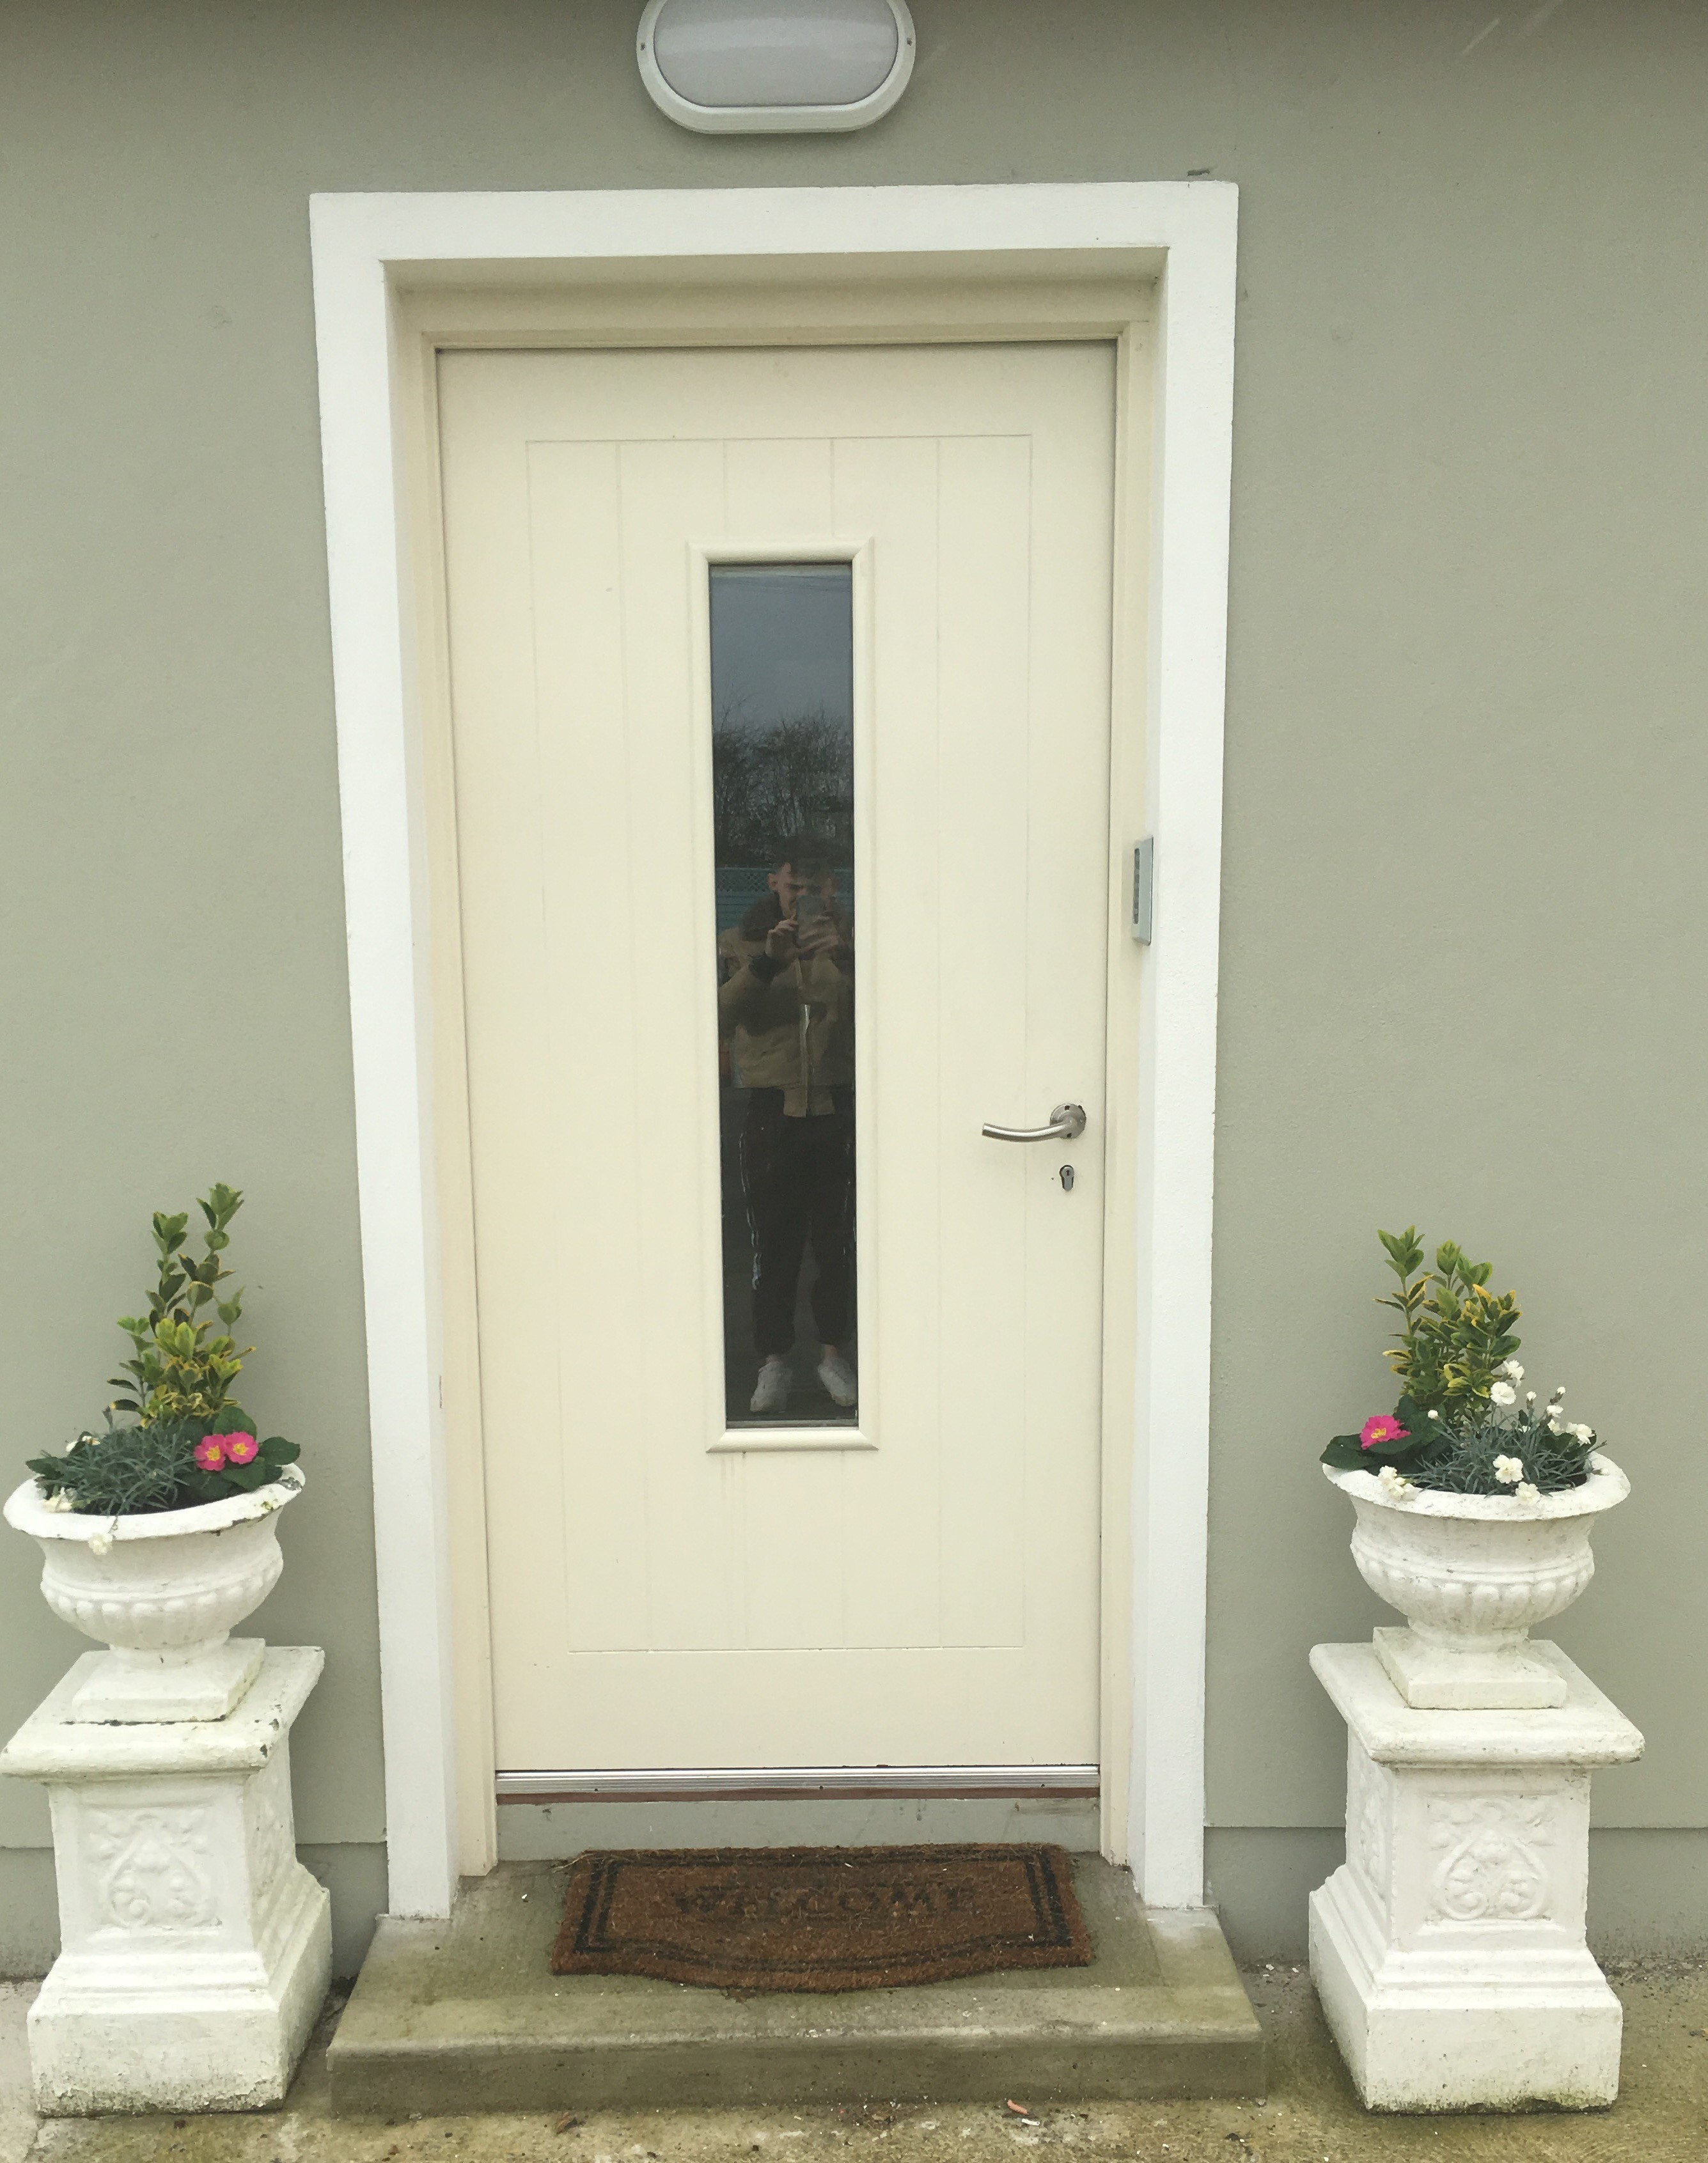 External Sheeted Door with Vision Panel